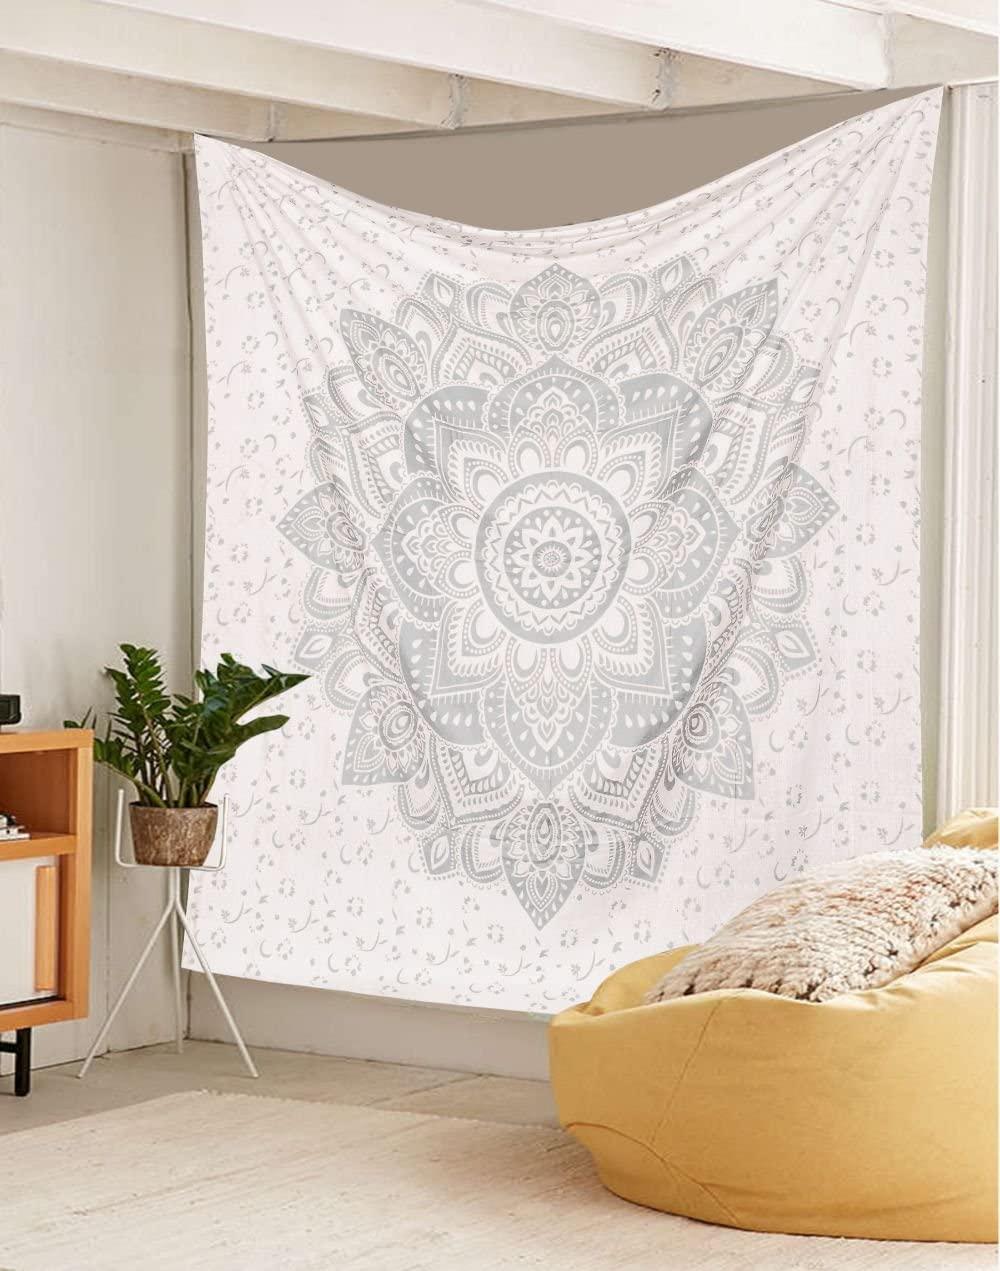 Exclusive Orignal Silver Ombre Tapestry by Labhanh, Mandala Tapestry, Queen Indian Mandala Wall Art Hippie Wall Hanging Bohemian Bedspread,